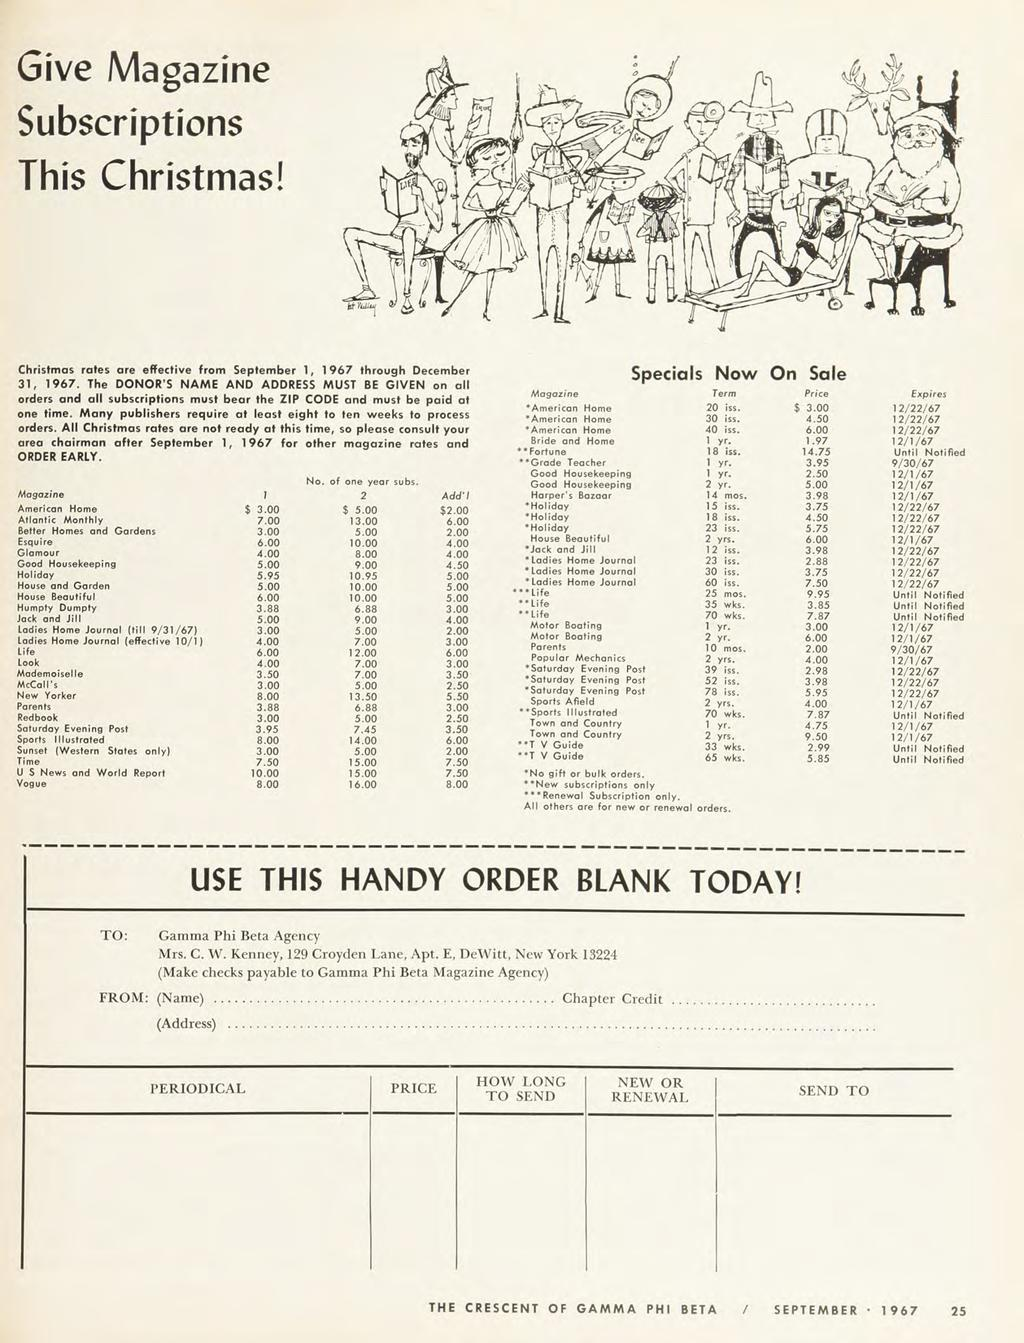 Give Magazine Subscriptions This Christmas! Christmas rates are effective from September 1, 1 967 through December 31, 1967.